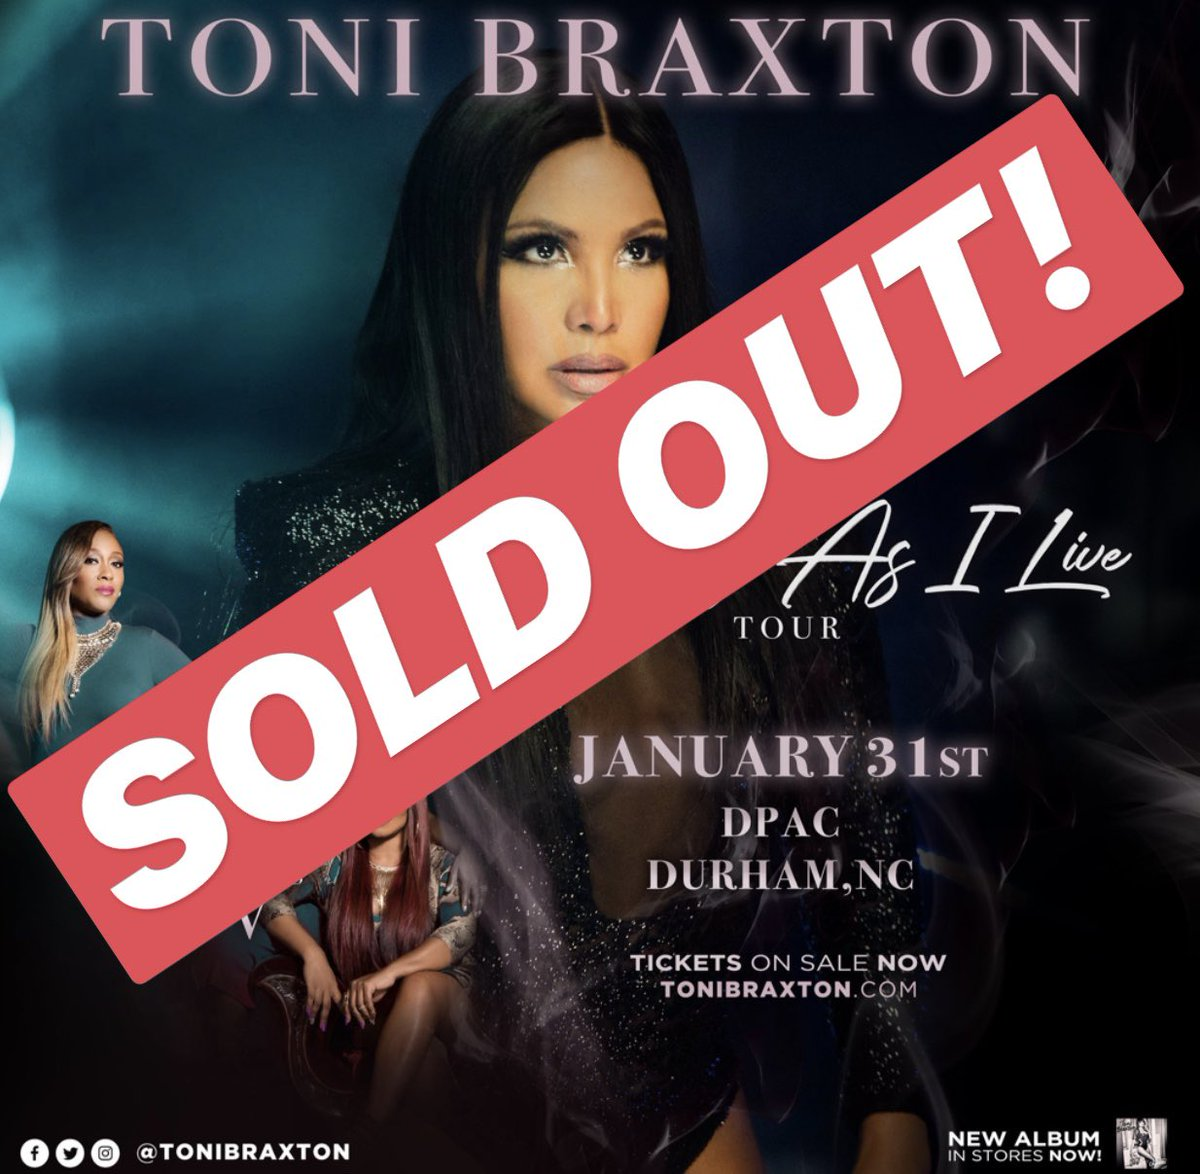 DURHAM, NC! Tomorrow's show at @DPAC is SOLD OUT! #AsLongAsILiveTour https://t.co/7Vy9lqCdGE